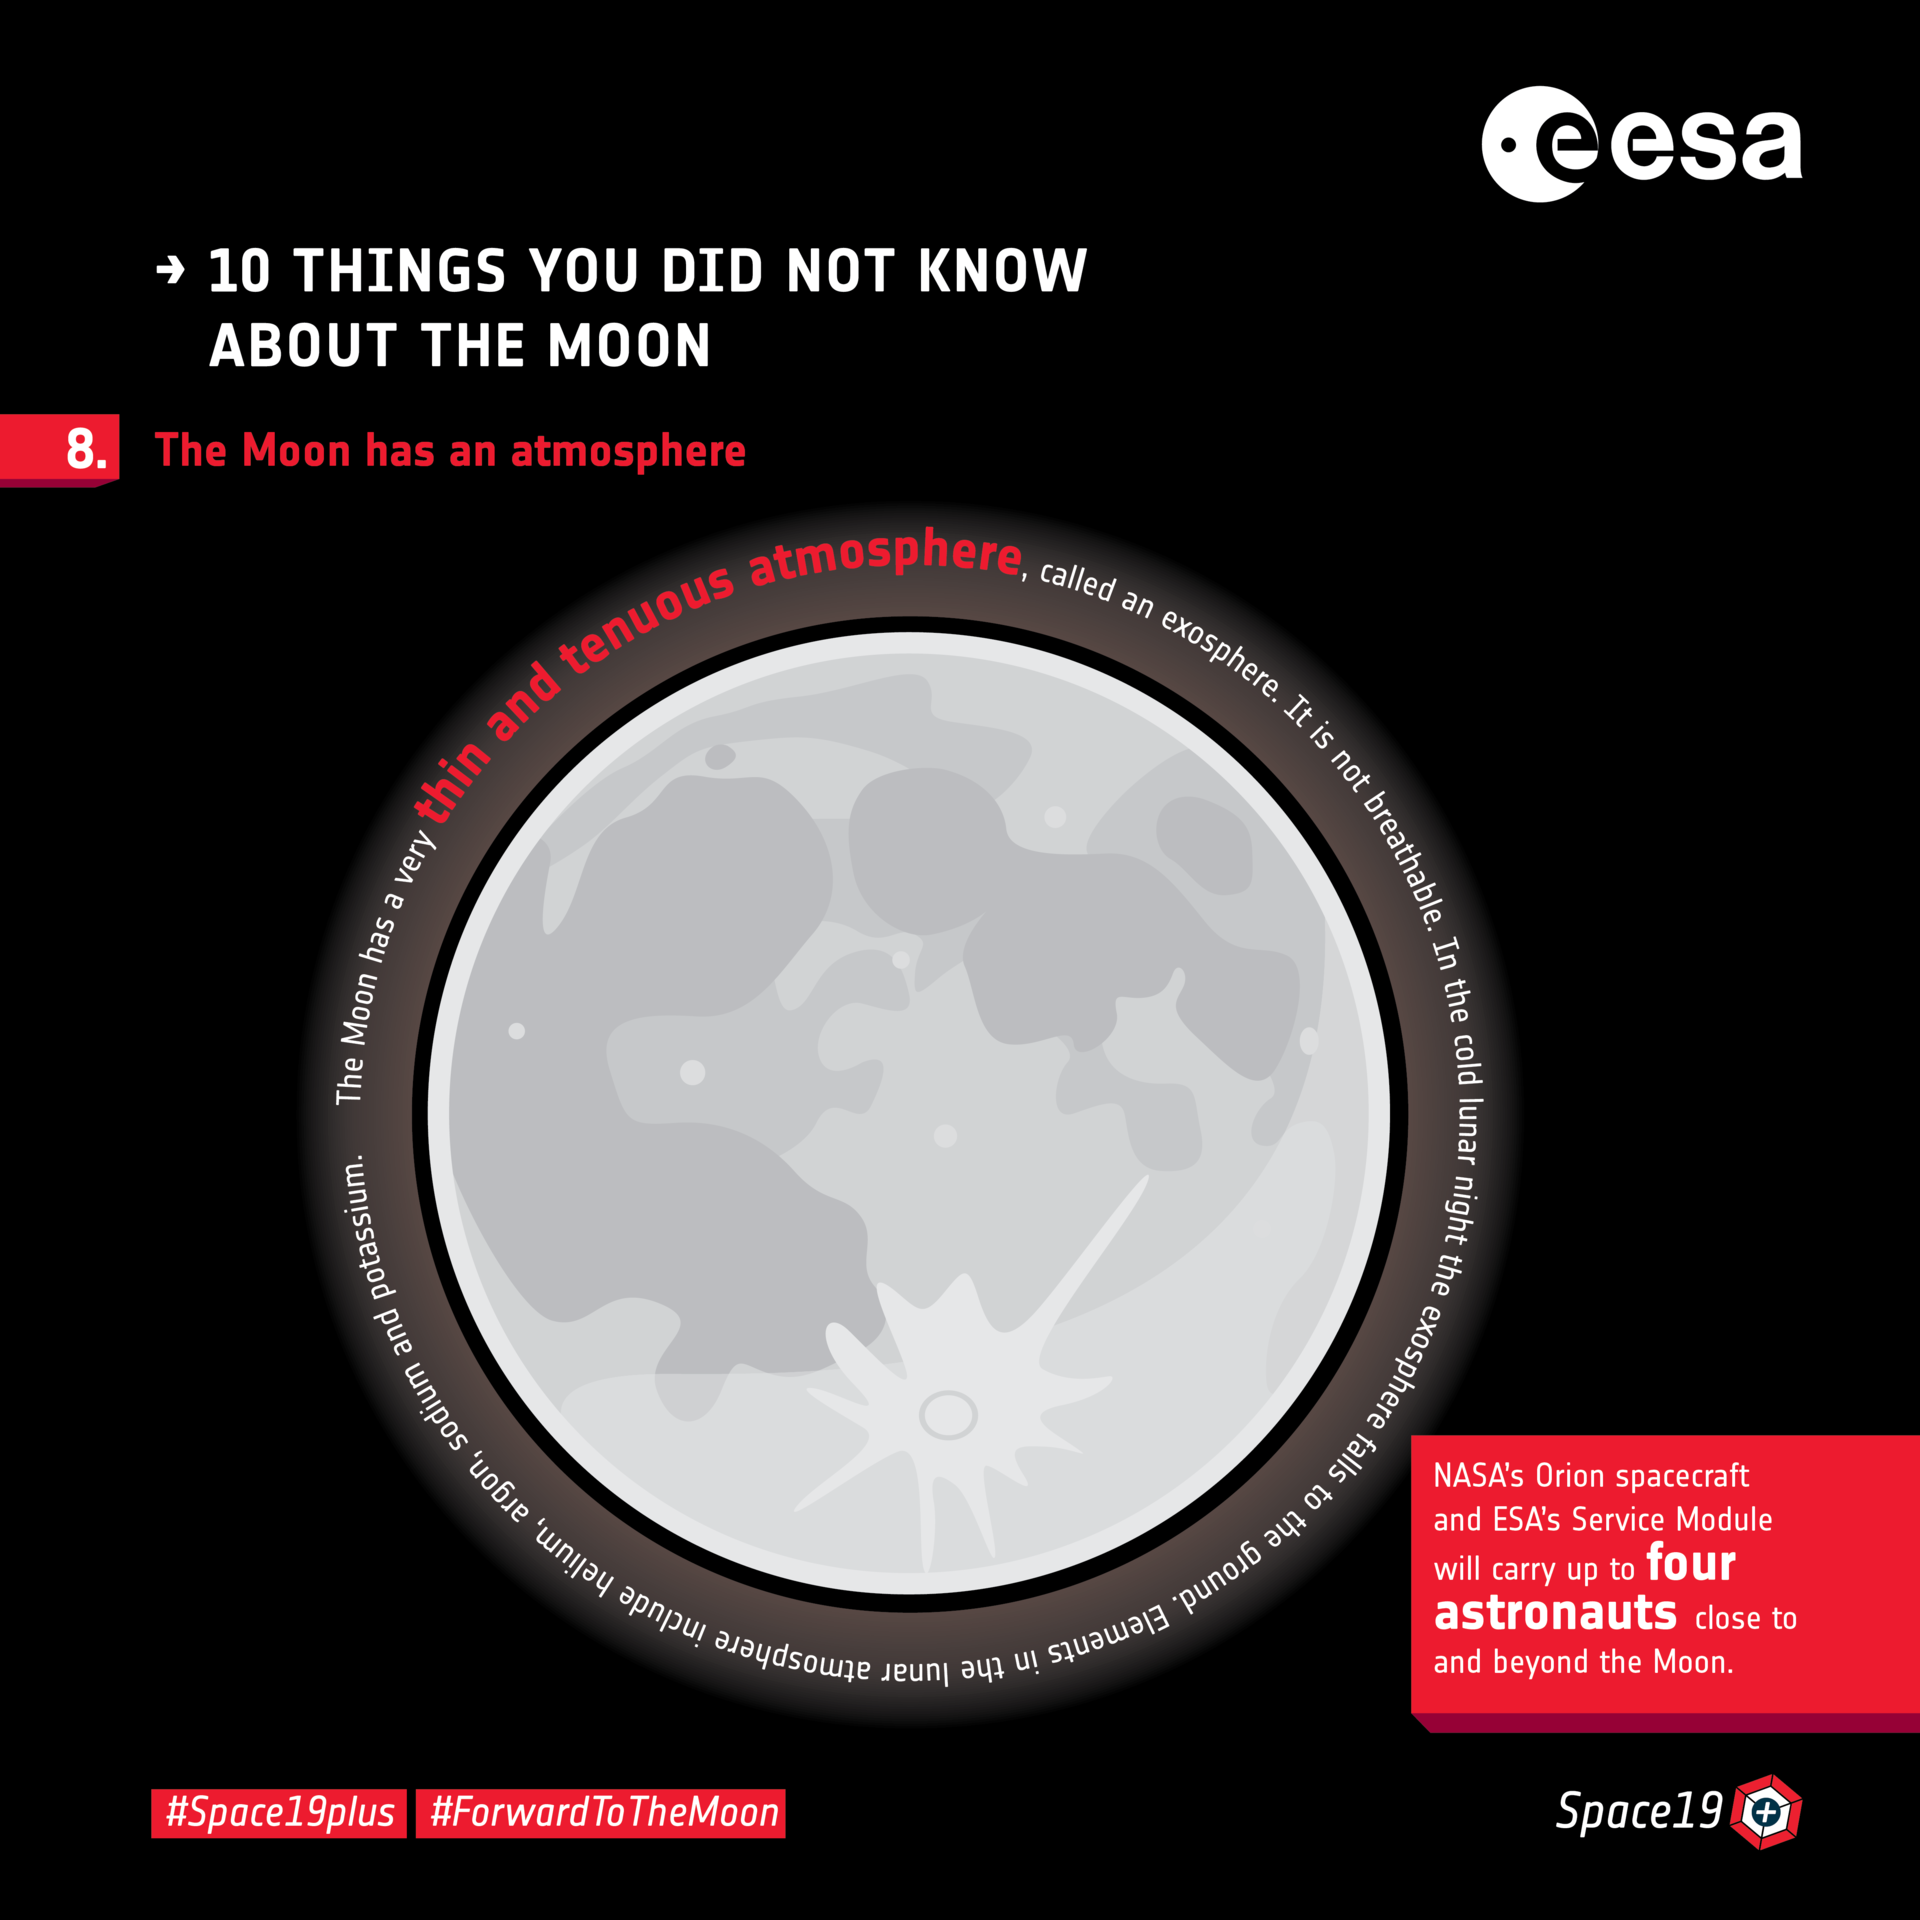 Ten things you did not know about the Moon: 8. Atmosphere